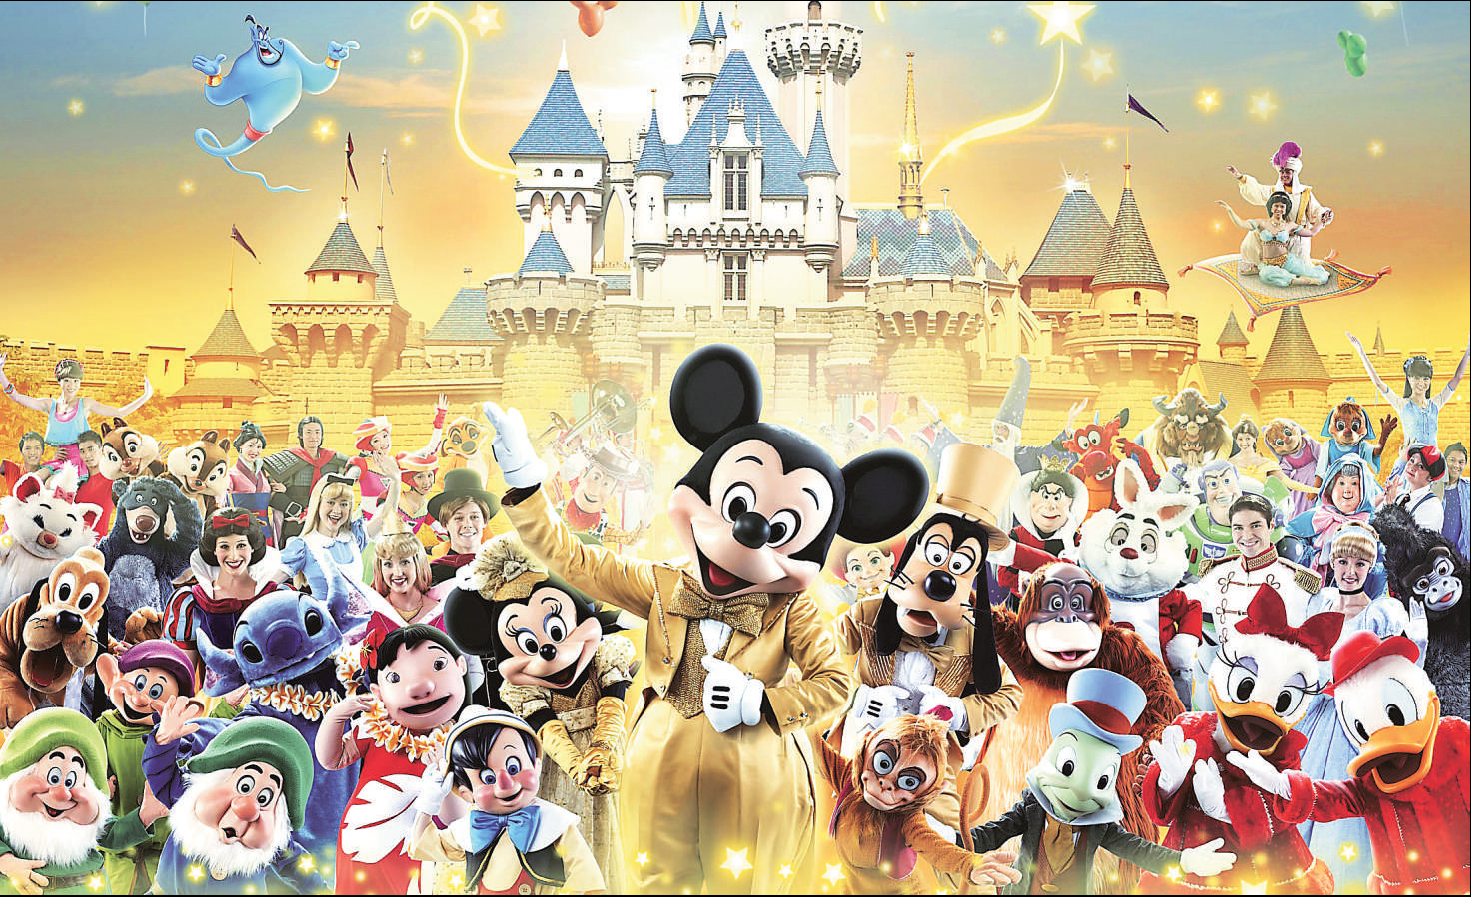 picture Disney characters photo Disney characters wallpaper 1471x897